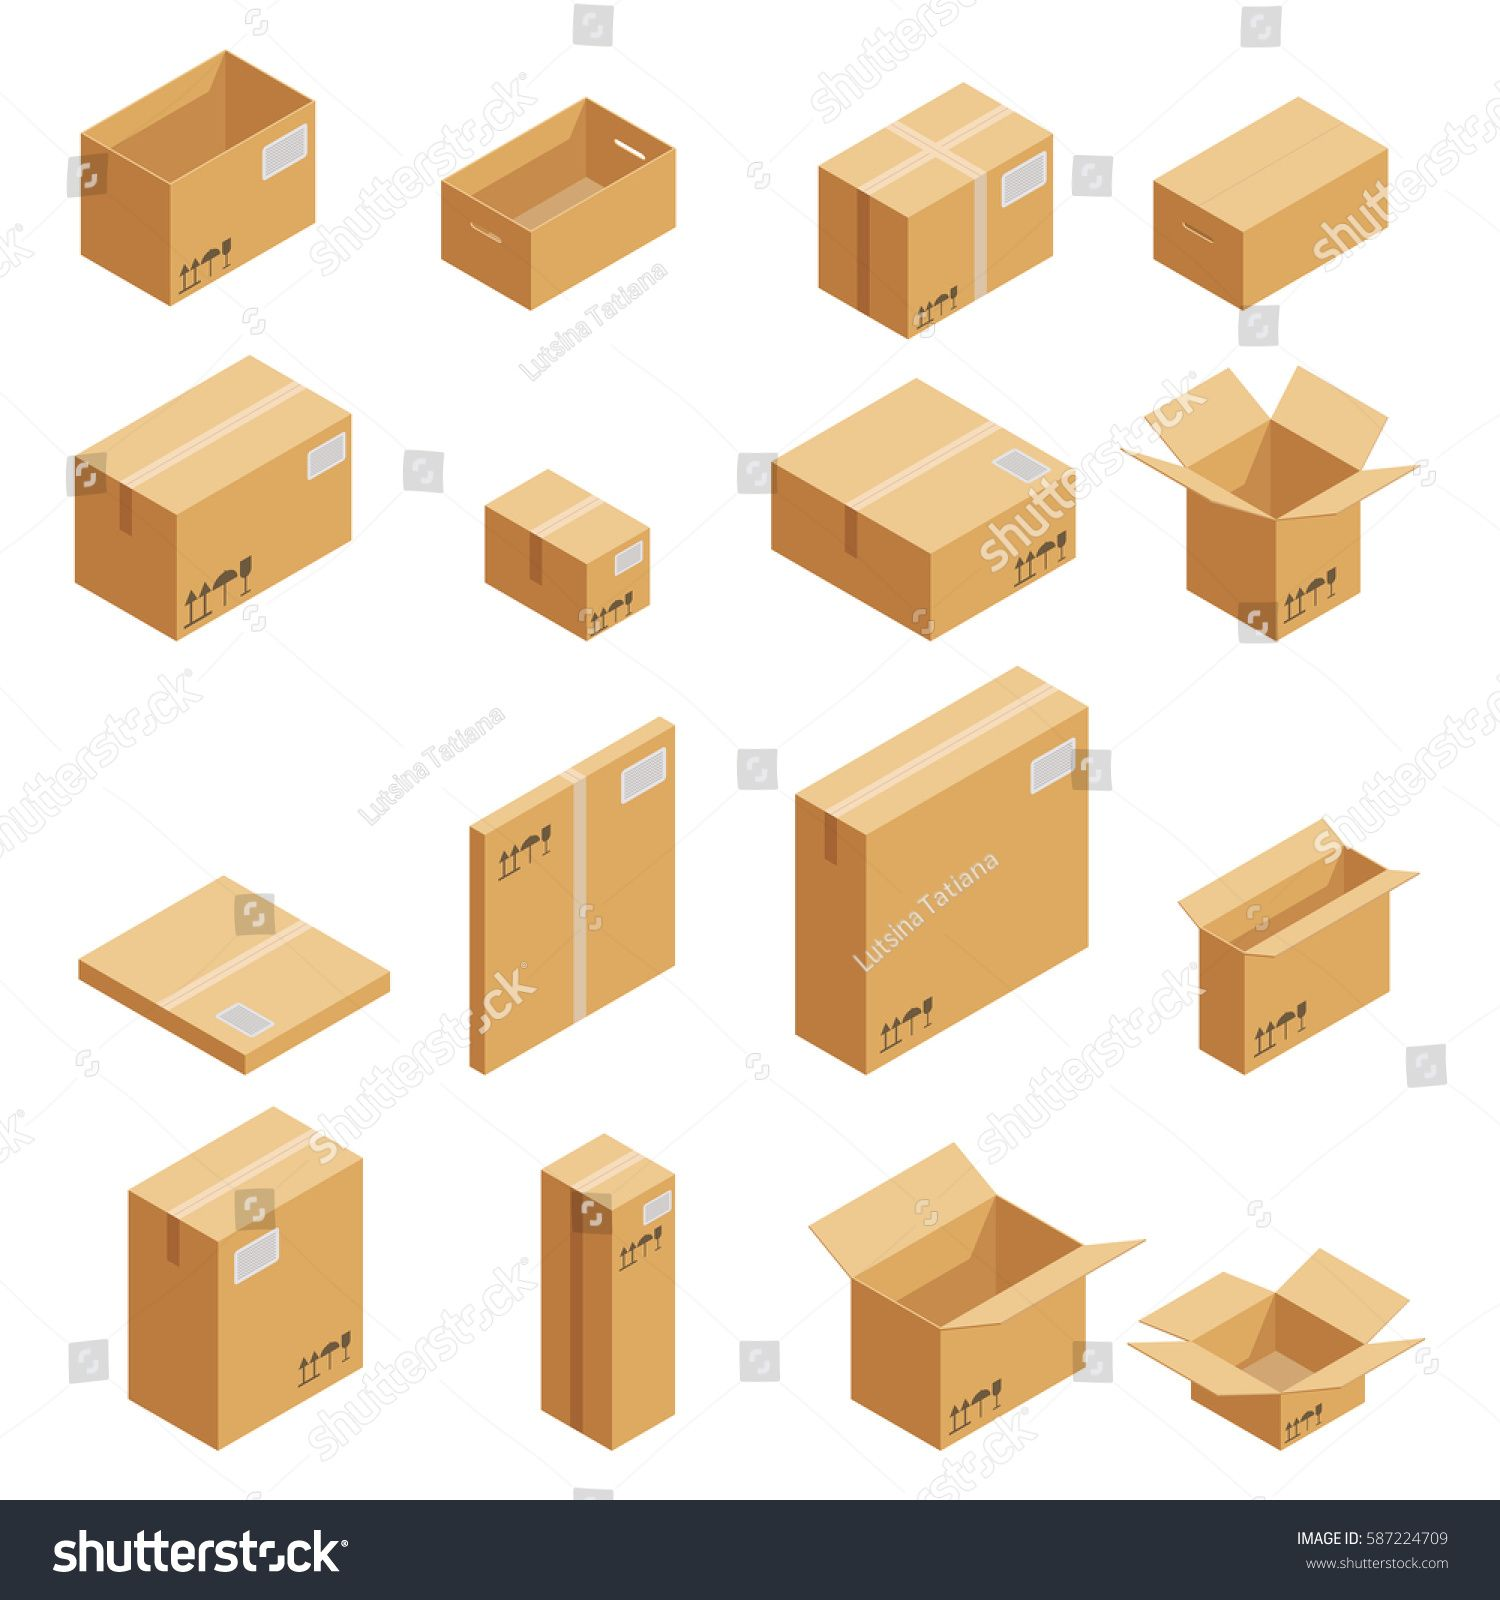 Download Carton Packaging Box Isometric Carton Packaging Box Images Set Of Different Size With Postal Signs This Side Up Fragile Vect Isometric Cardboard Cardboard Box